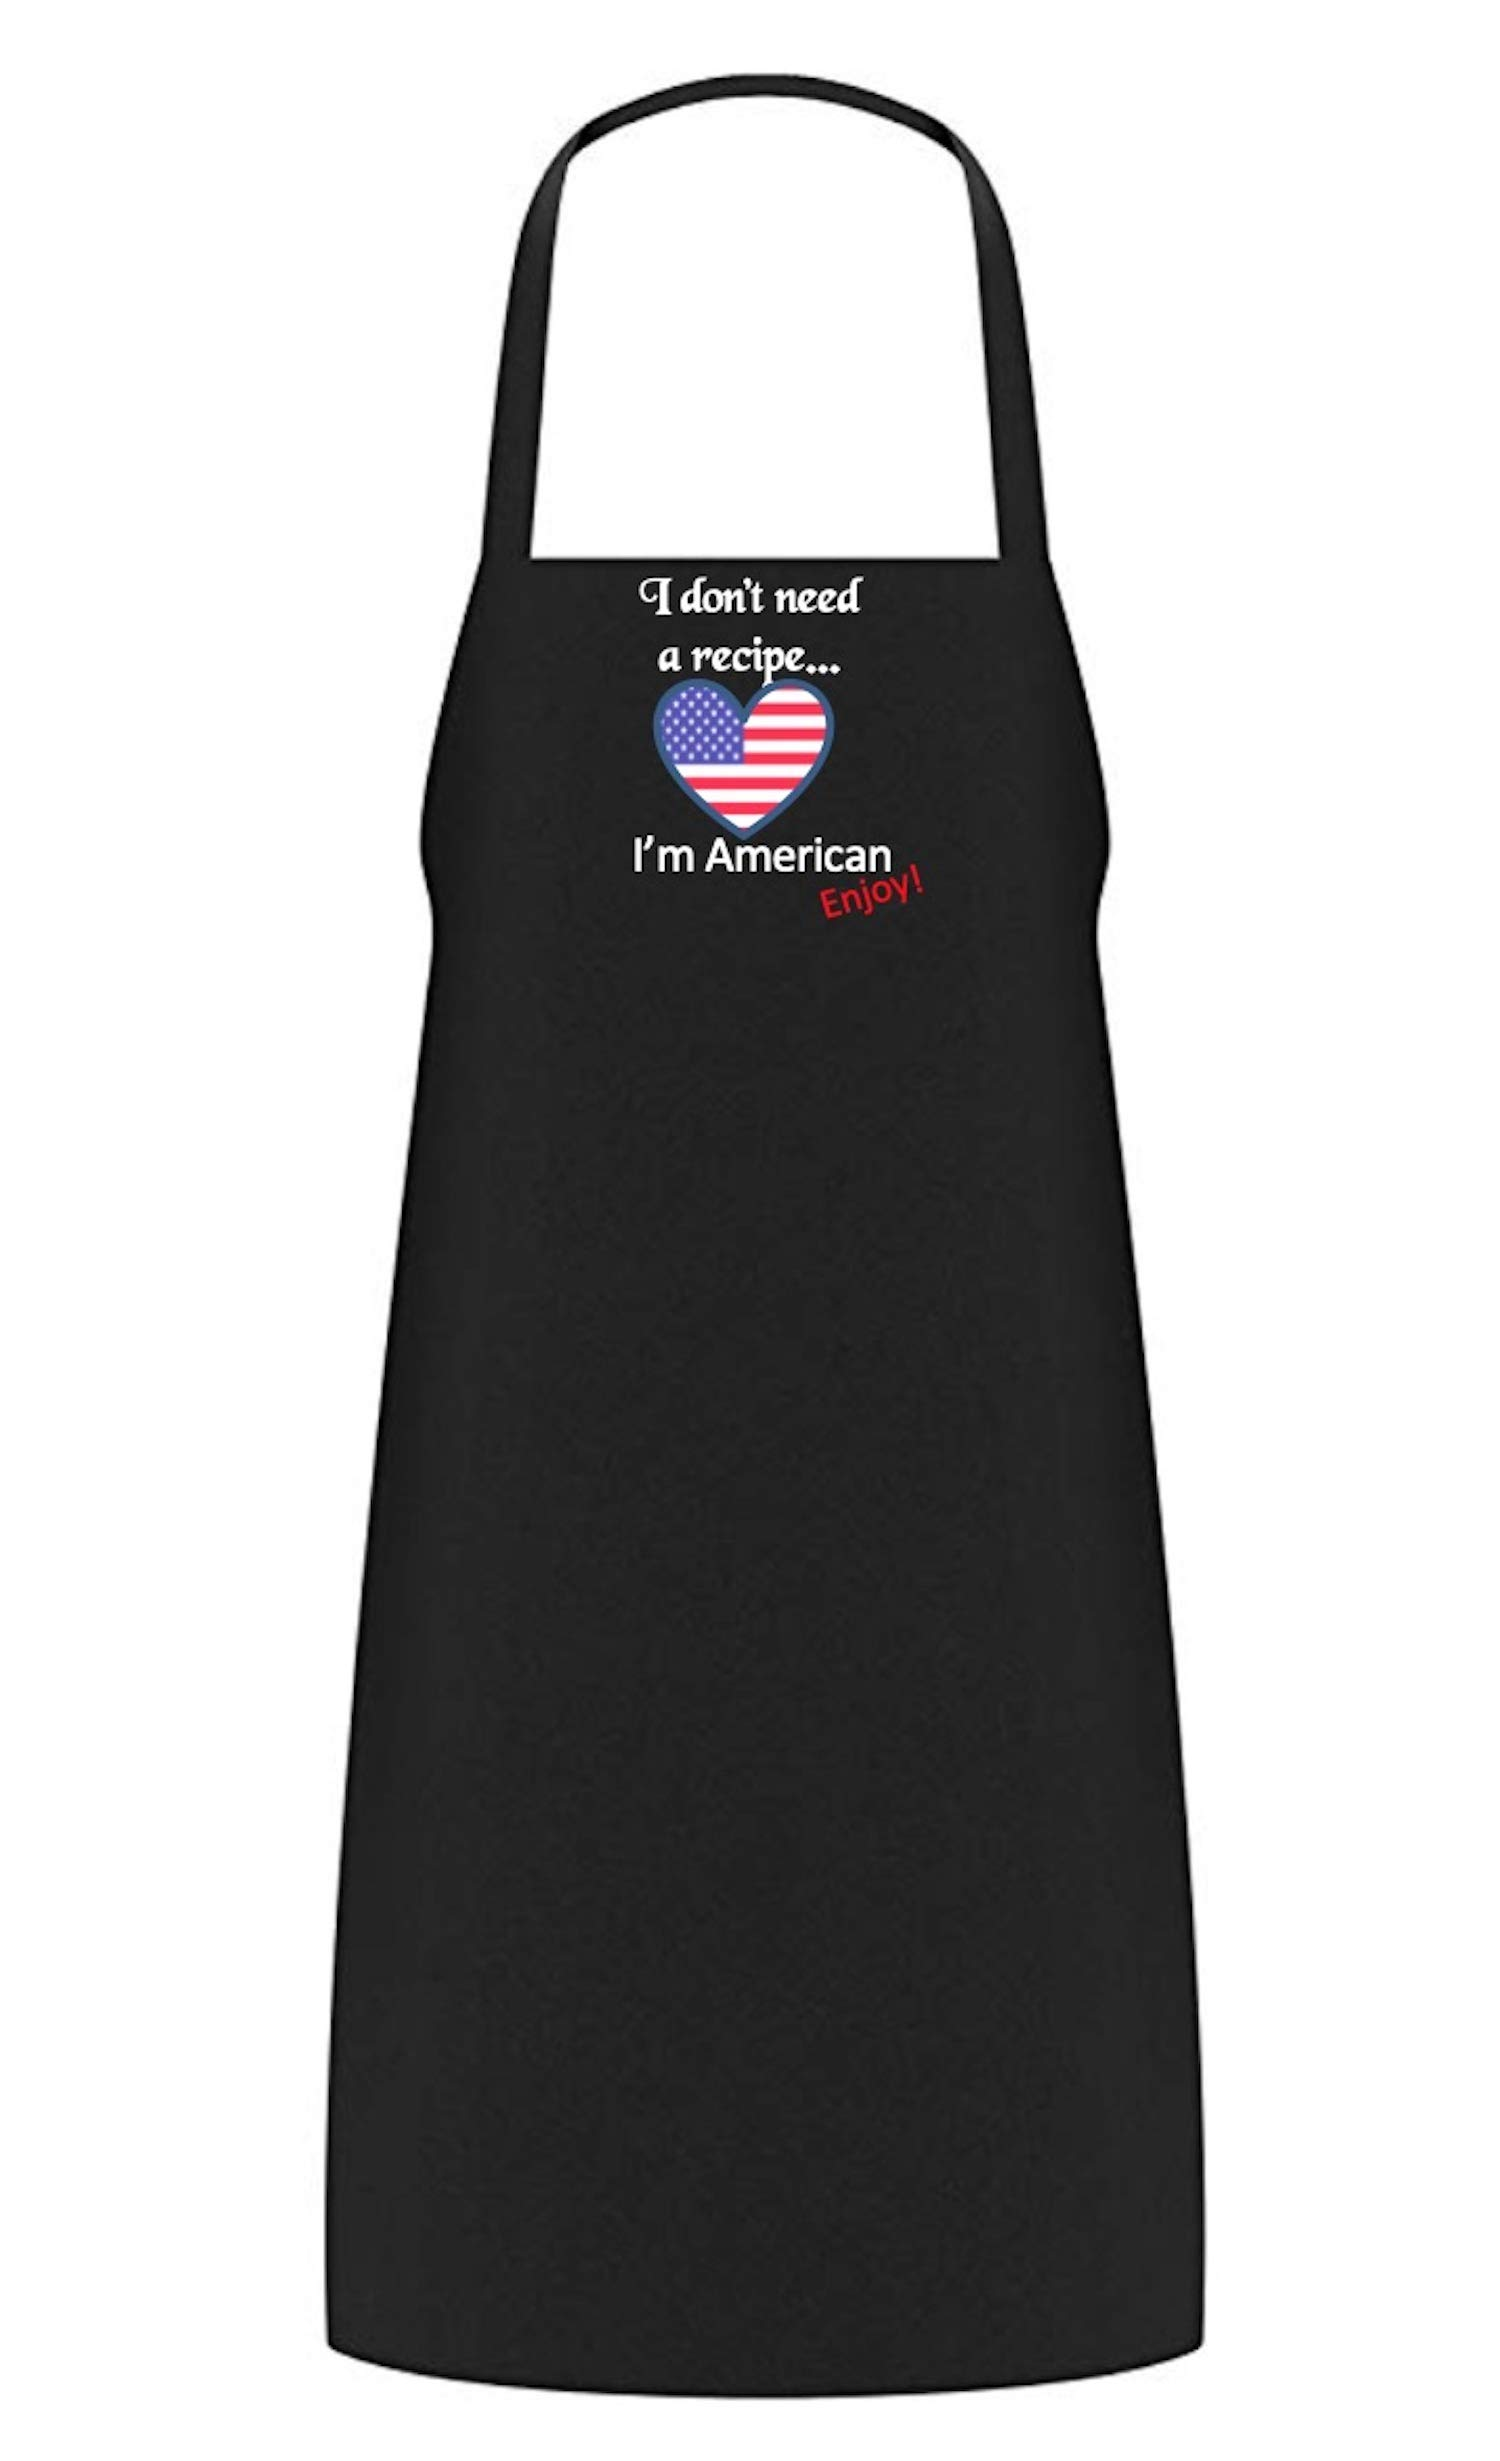 HARPEL My Cuisine Kitchen Apron (American) for Women & Men. Black Chef Aprons with Pockets for Grill & BBQ Cooking. Funny Quote on Bib. Adjustable Neck Strap, Non Crease, Durable Unisex Adult Size